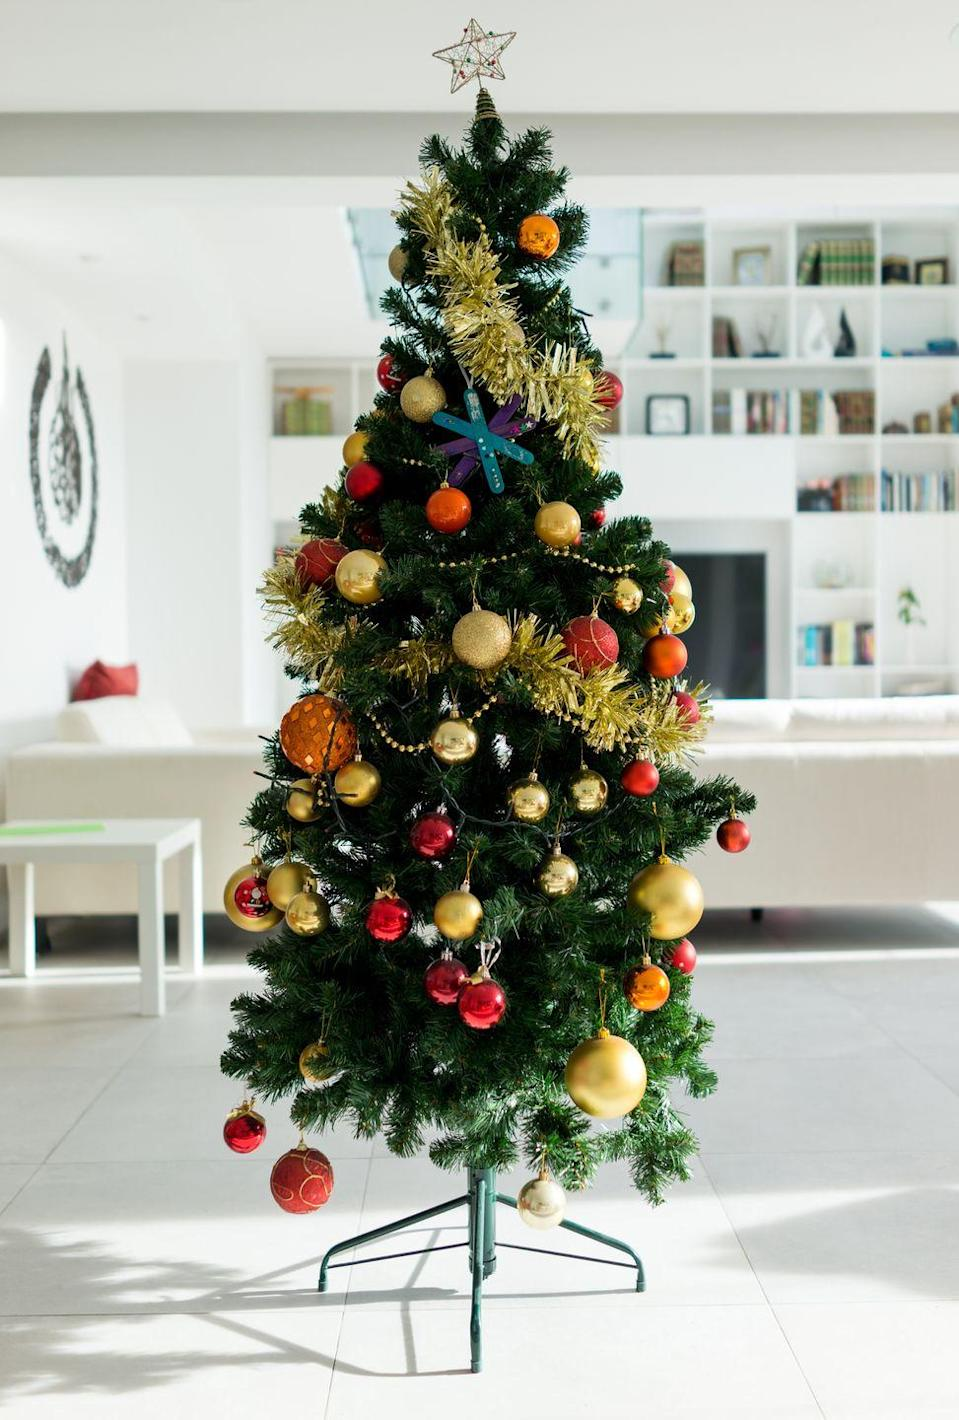 <p>It may be cold outside, but your holiday decor doesn't have to be. A Christmas tree like this that uses only warm colors makes a bright, vibrant statement in any kind of weather. </p>